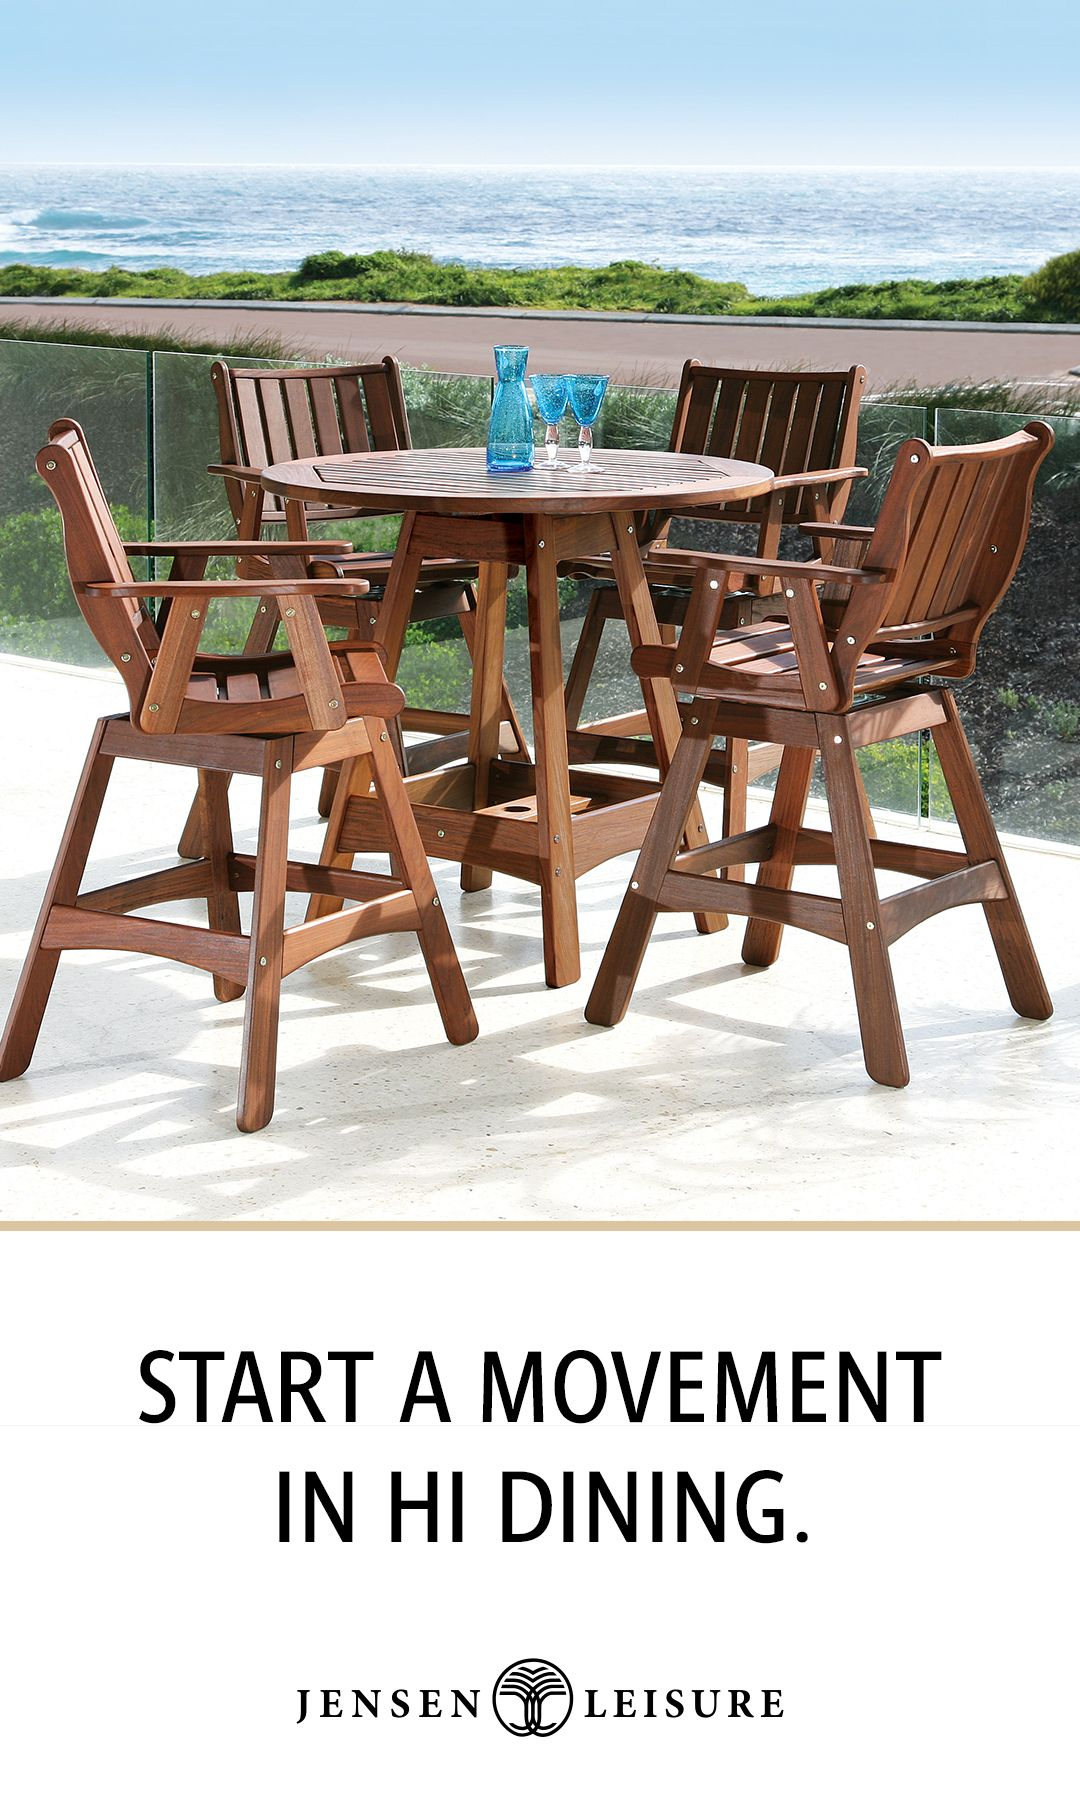 Classic Ipe Wood Outdoor Hi Dining And Swivel Seating Dining Table Ergonomic Seating Ipe Wood